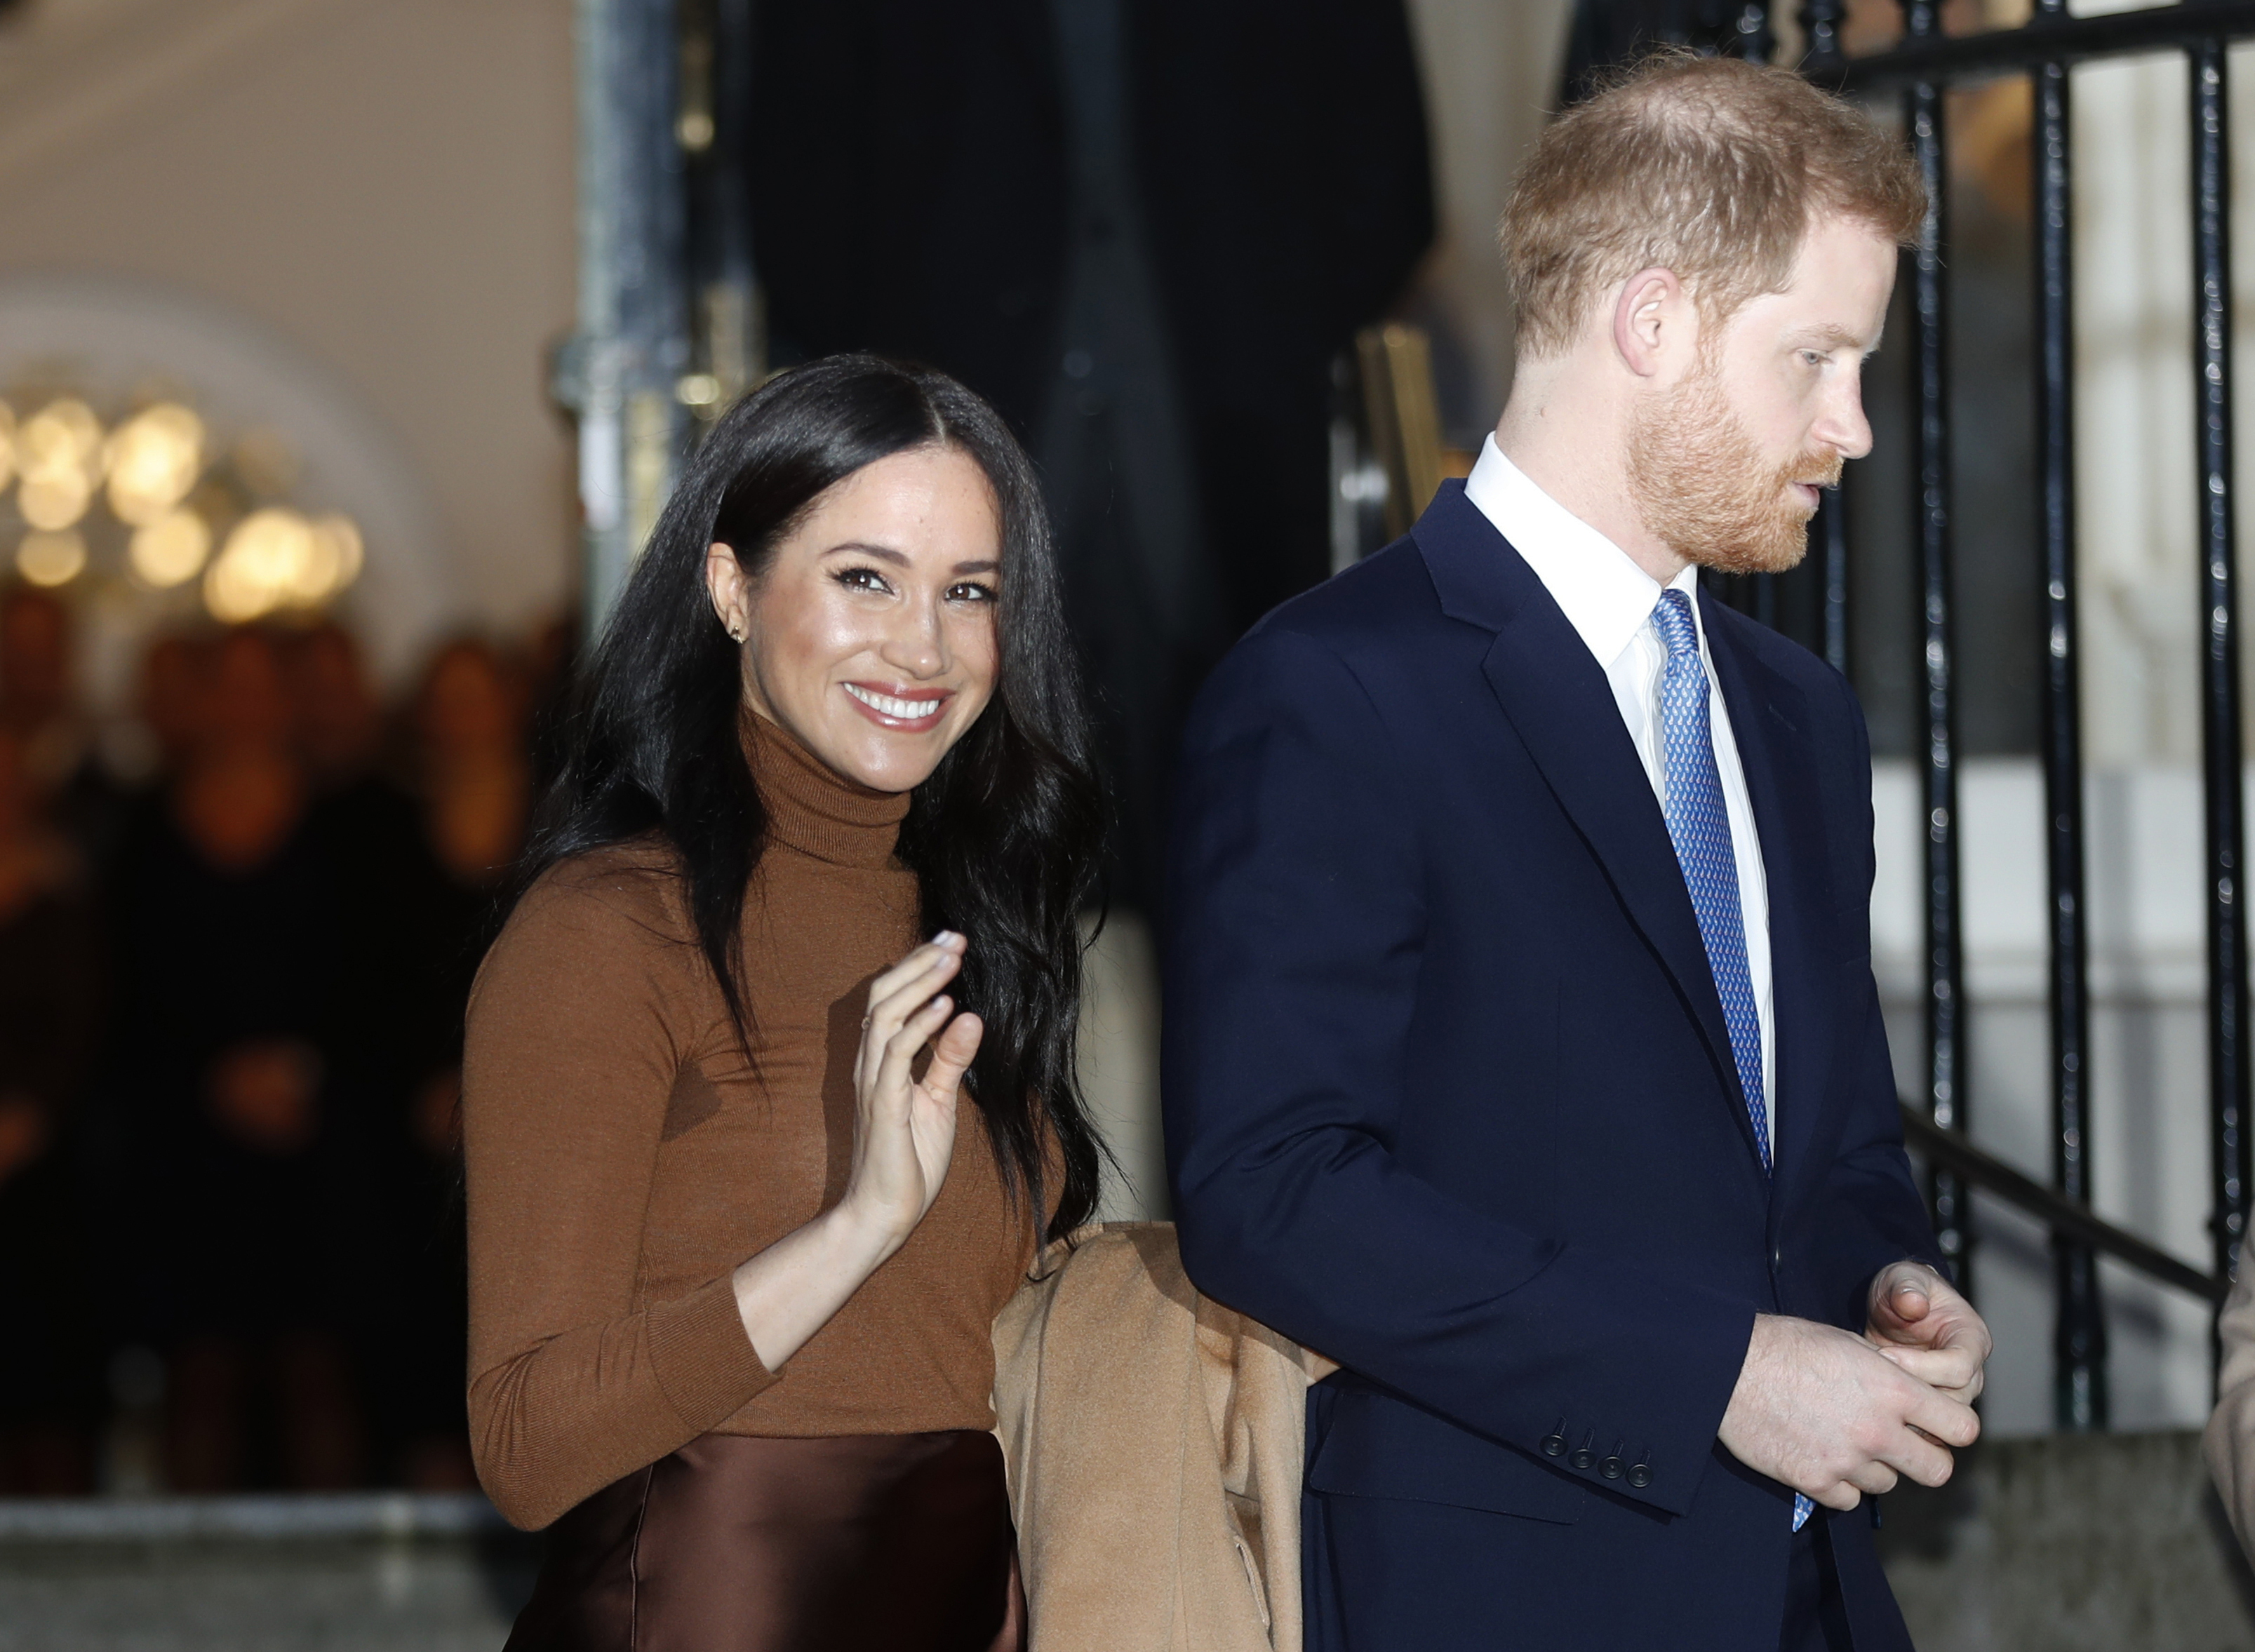 Britain's Prince Harry and Meghan, Duchess of Sussex leave after visiting Canada House in London, after their recent stay in Canada